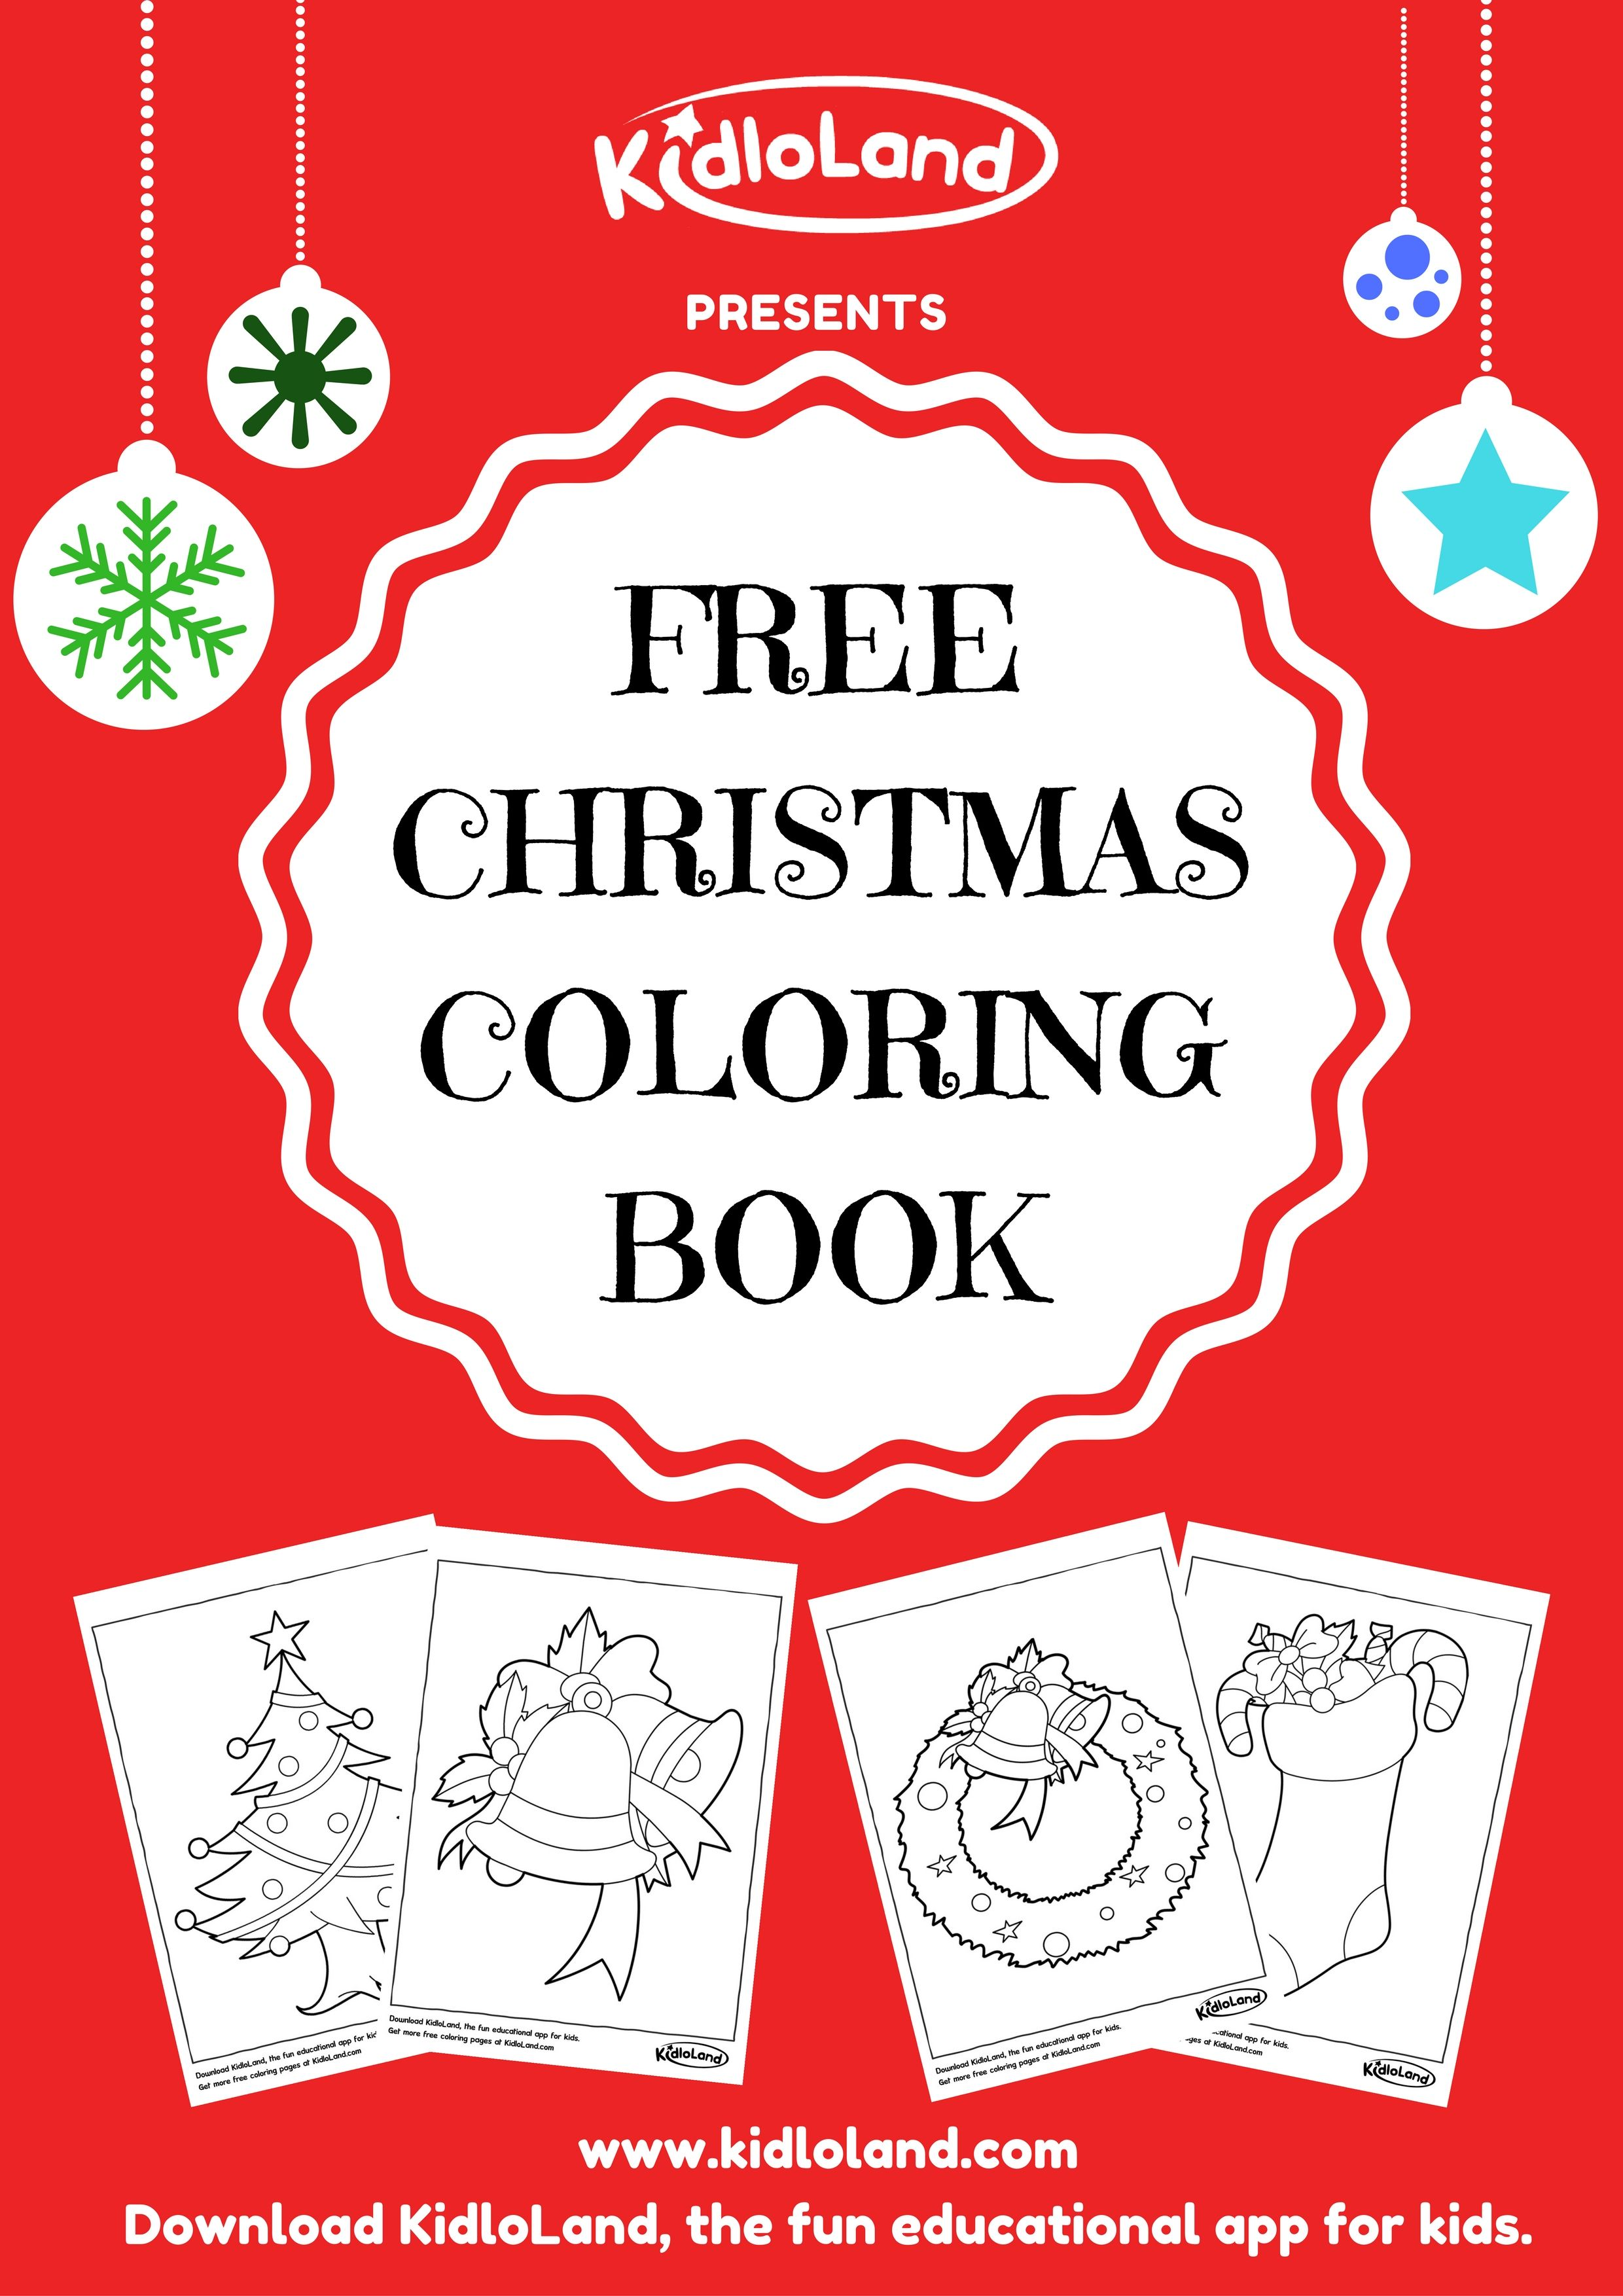 FREE CHRISTMAS COLORING BOOK